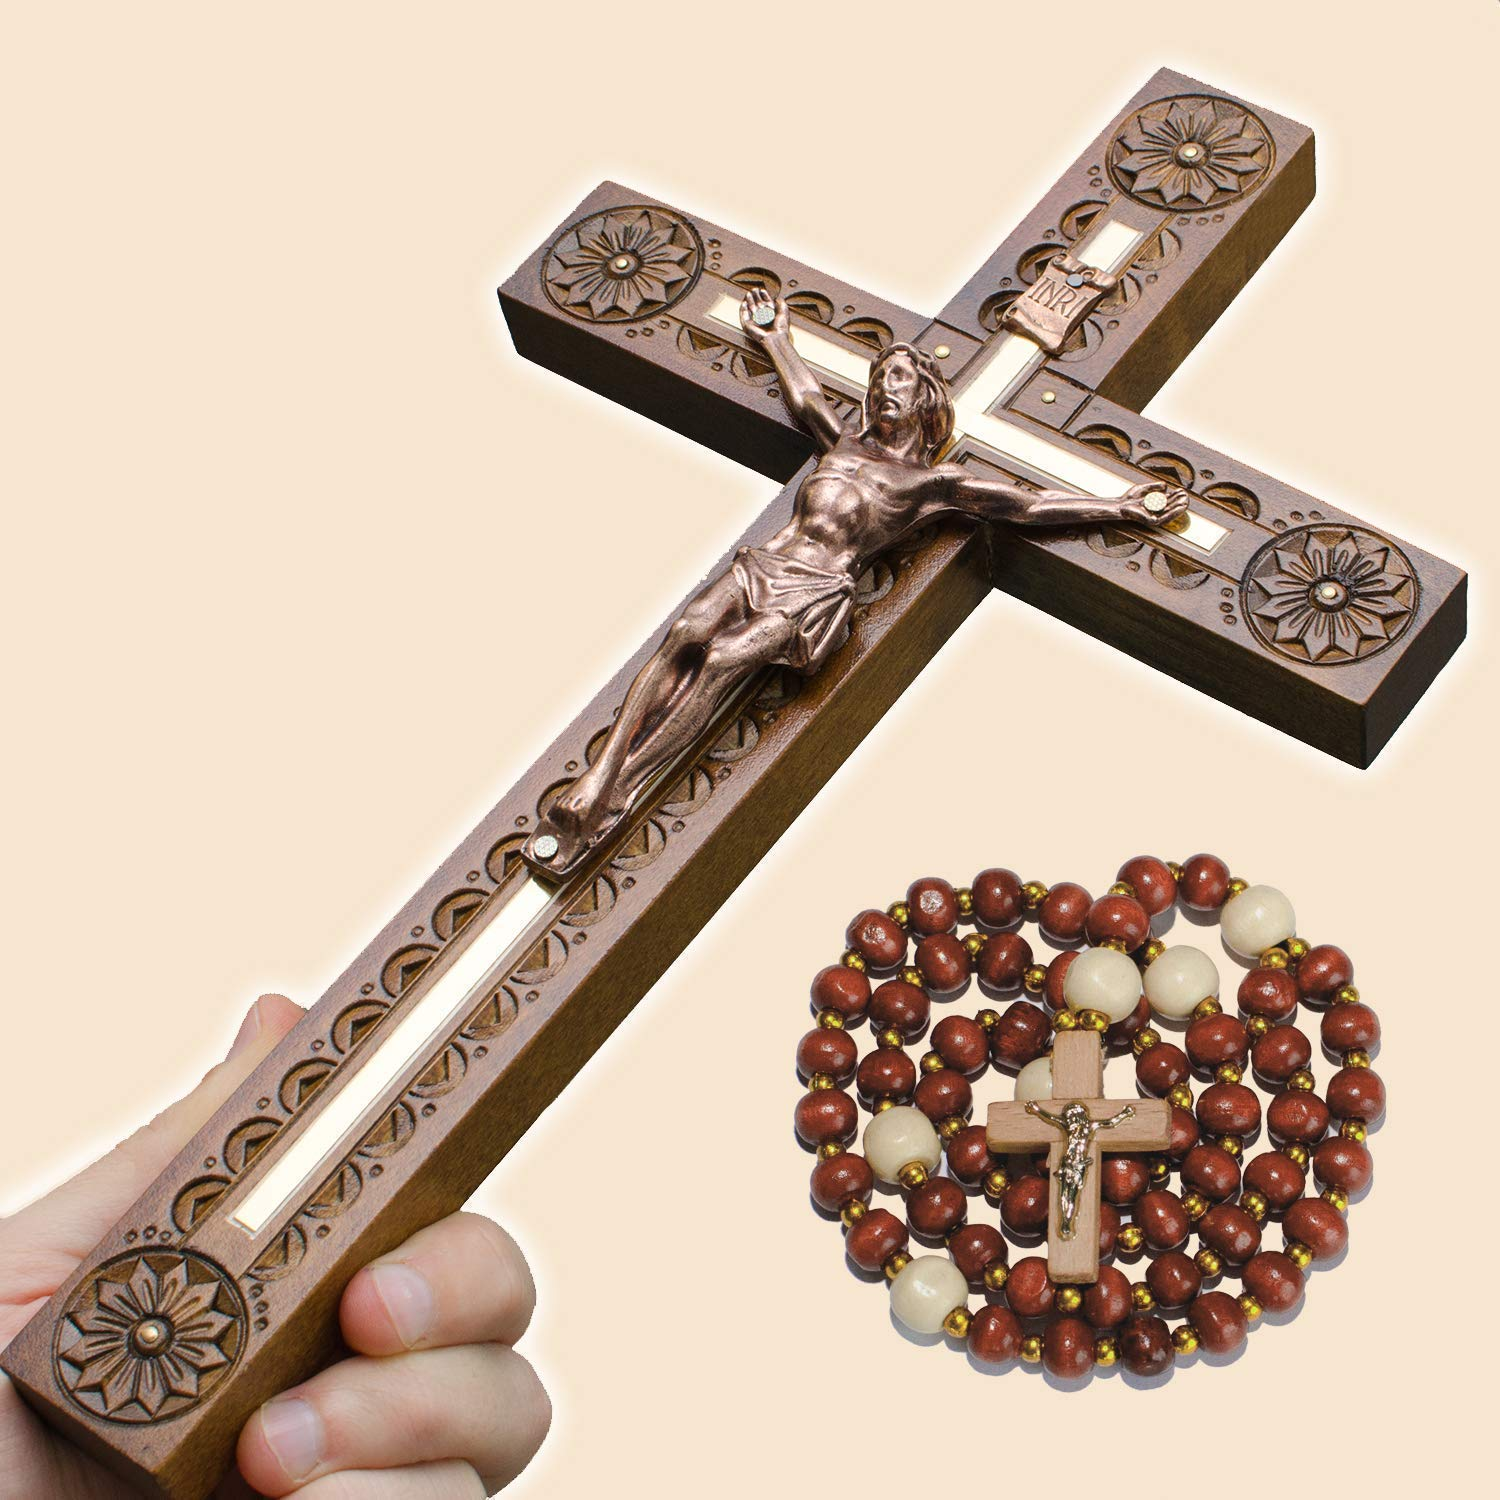 Hand Carved Crucifix Wall Cross for Home Decor - Wooden Catholic Wall Crucifix - 12 Inch